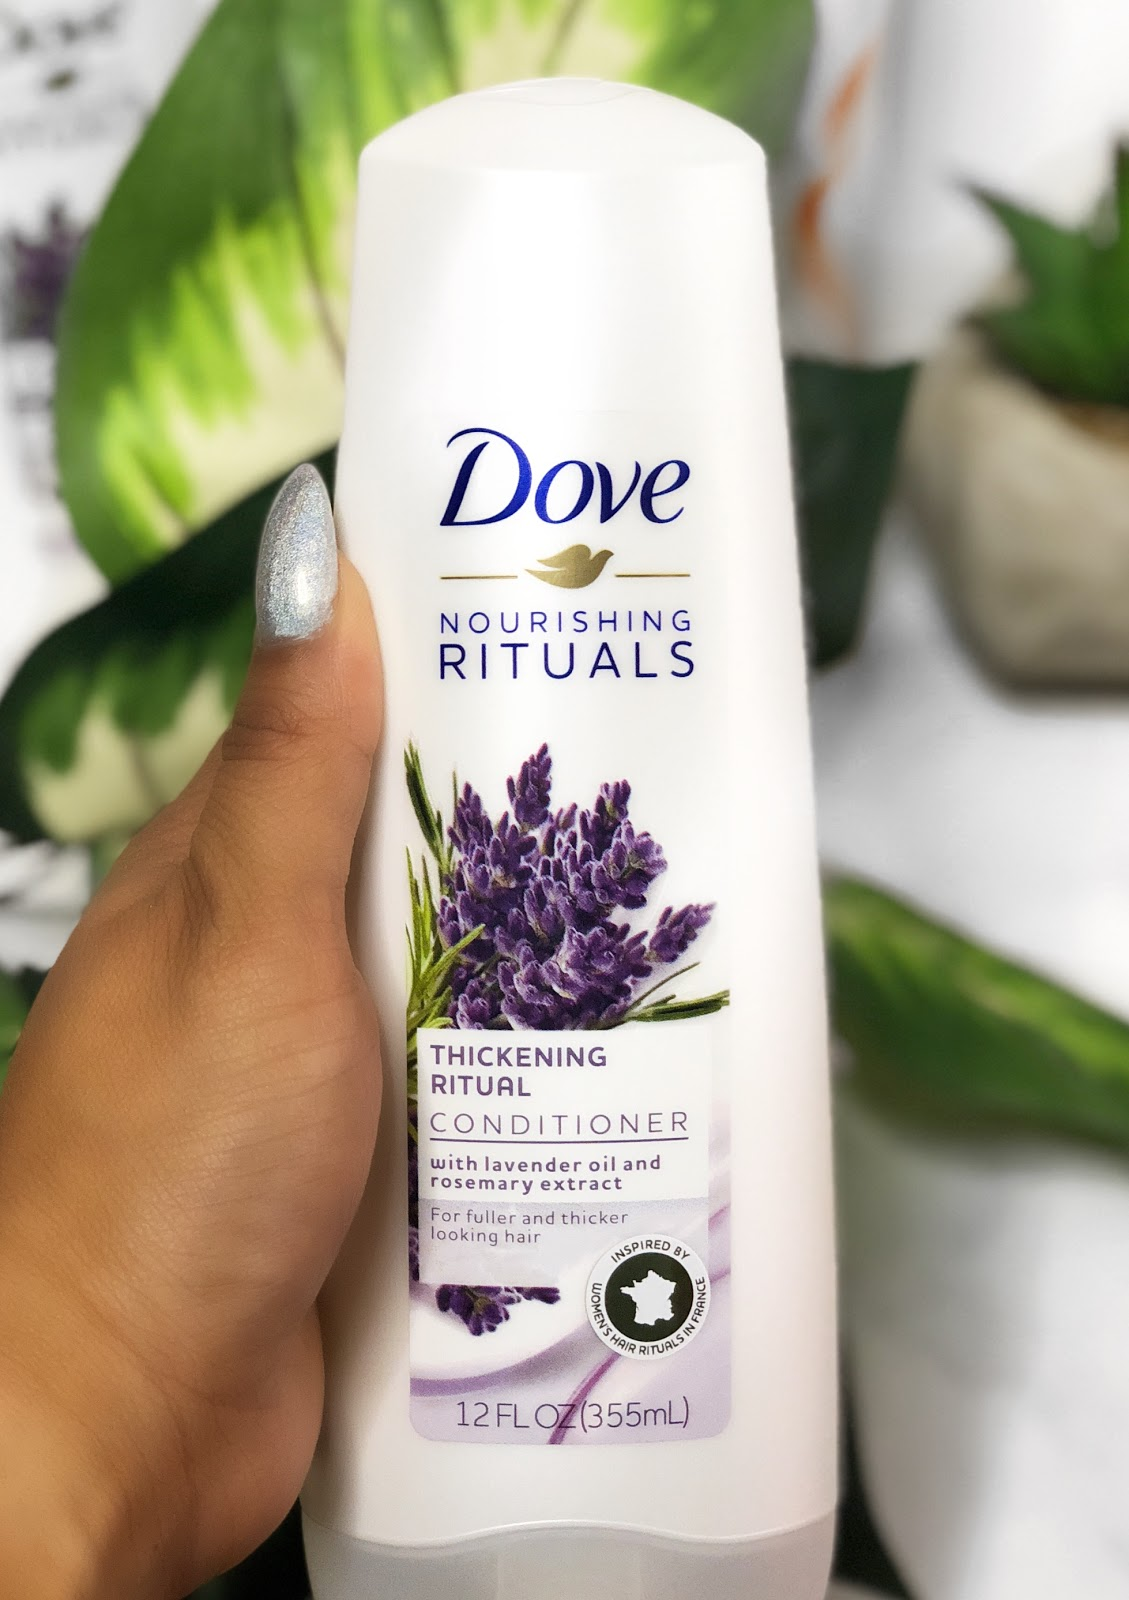 Dove Nourishing Rituals Hair Care